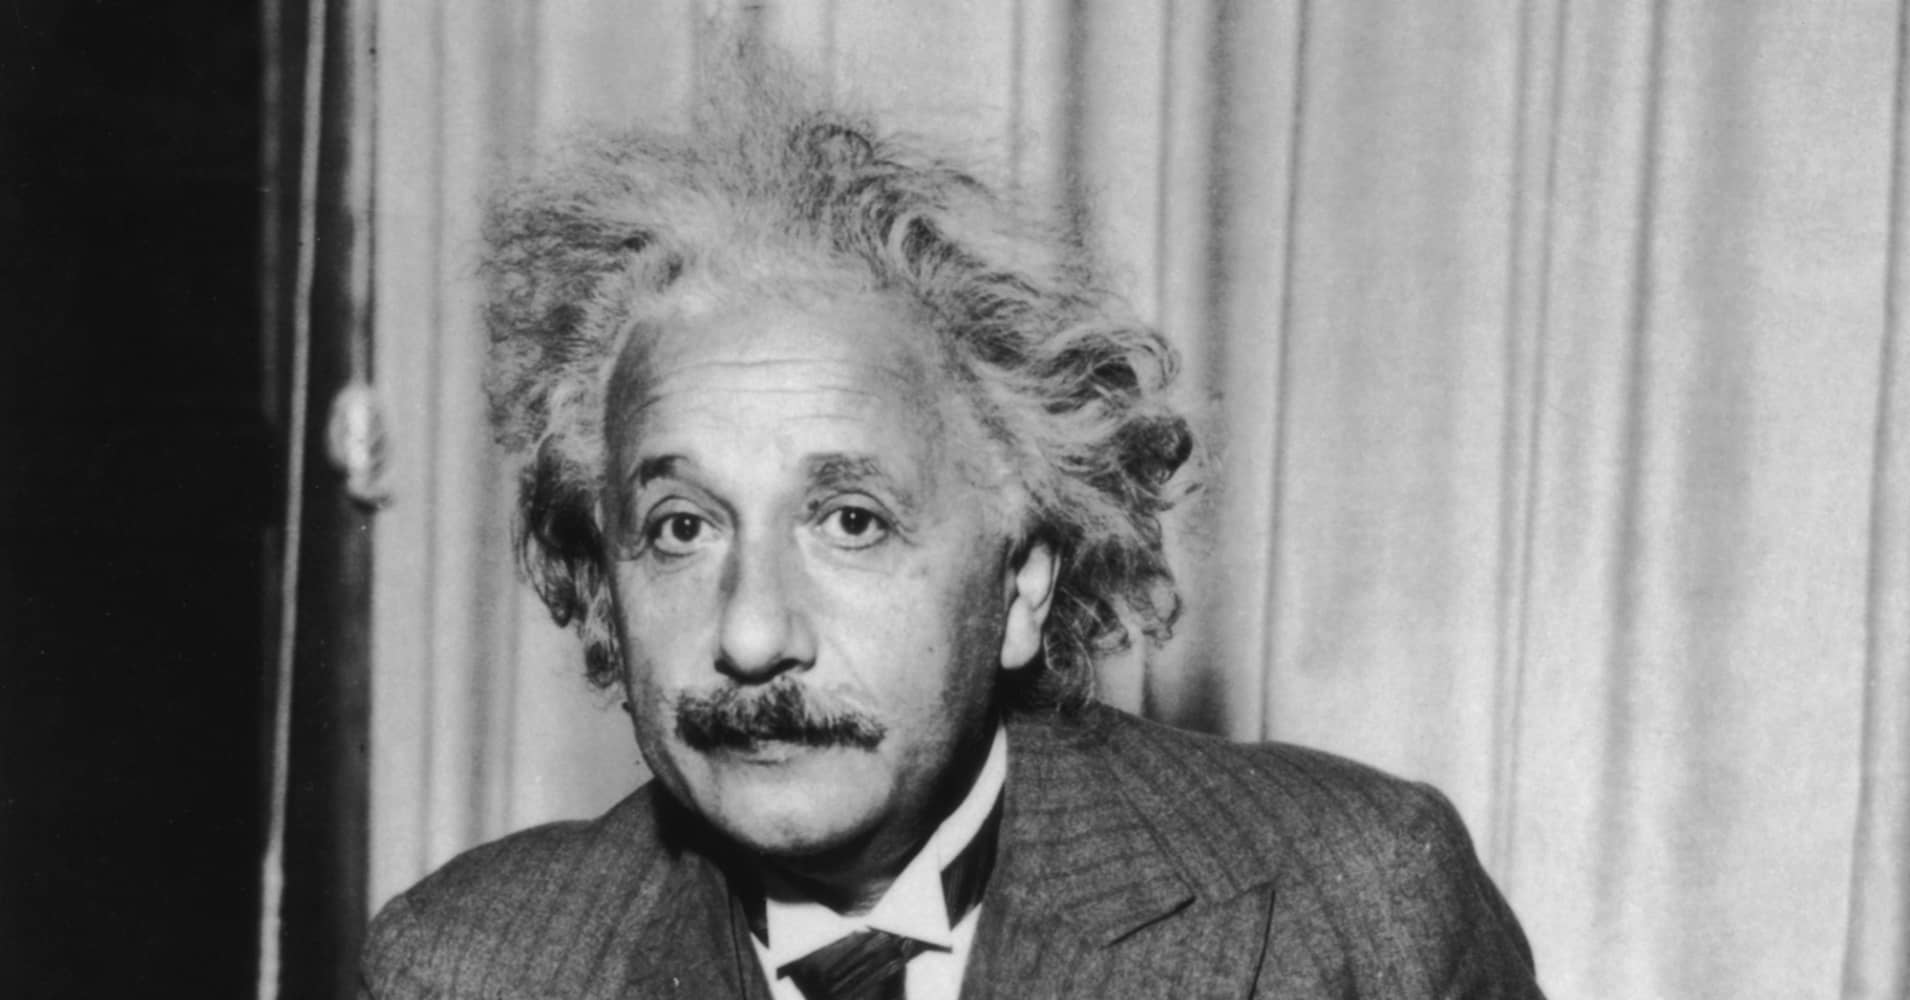 10 research-proven tricks that make you seem smarter than you are